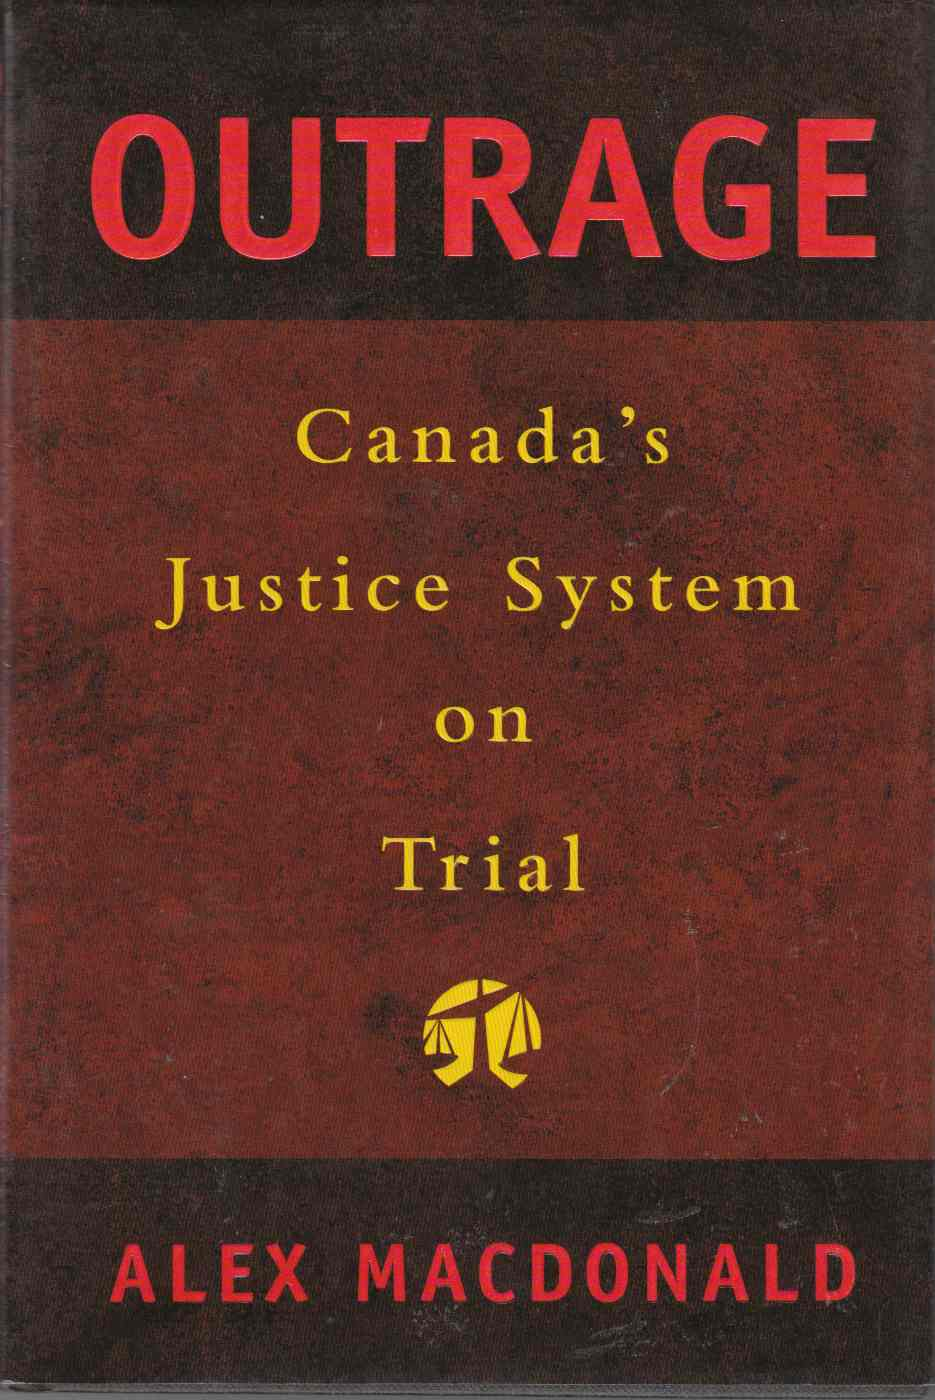 Image for Outrage Canada's Justice System on Trial